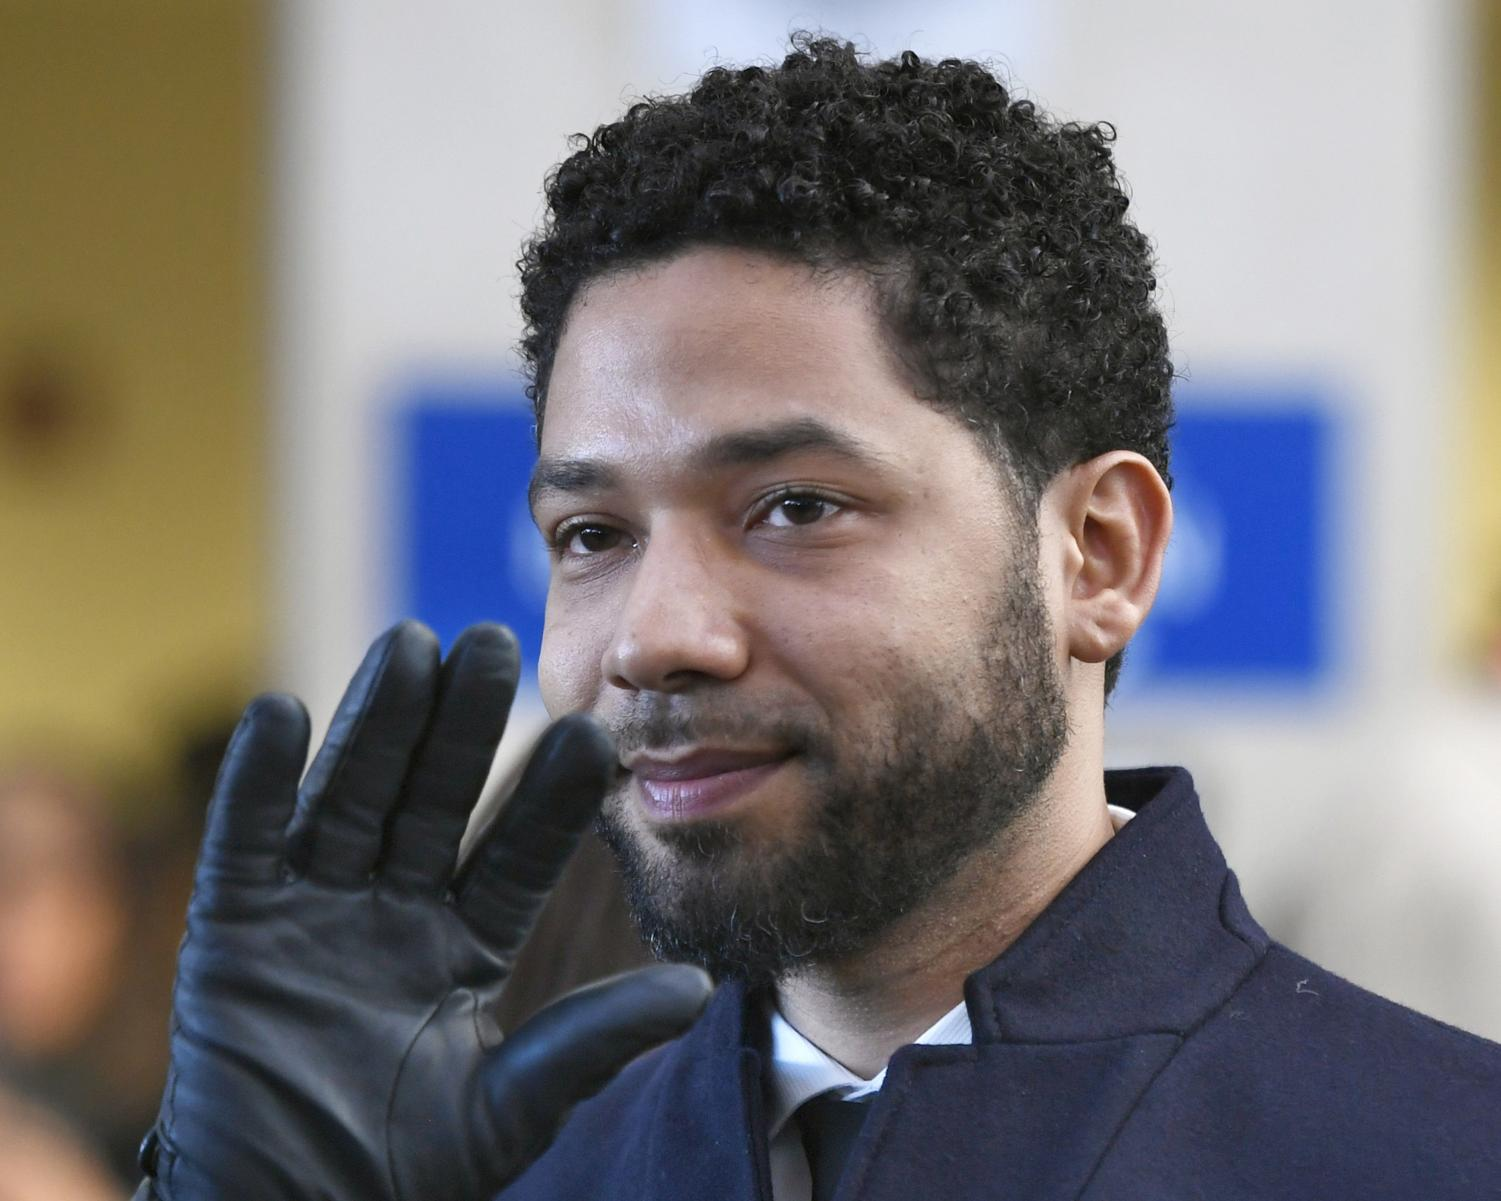 In this March 26, 2019, file photo, actor Jussie Smollett waves as he leaves Cook County Court after his charges were dropped in Chicago. A judge in Chicago has ordered the file in the Smollett criminal case unsealed. Cook County Judge Steven Watkins said Thursday, May 23, 2019, that while there are good arguments in favor of keeping the file sealed, the